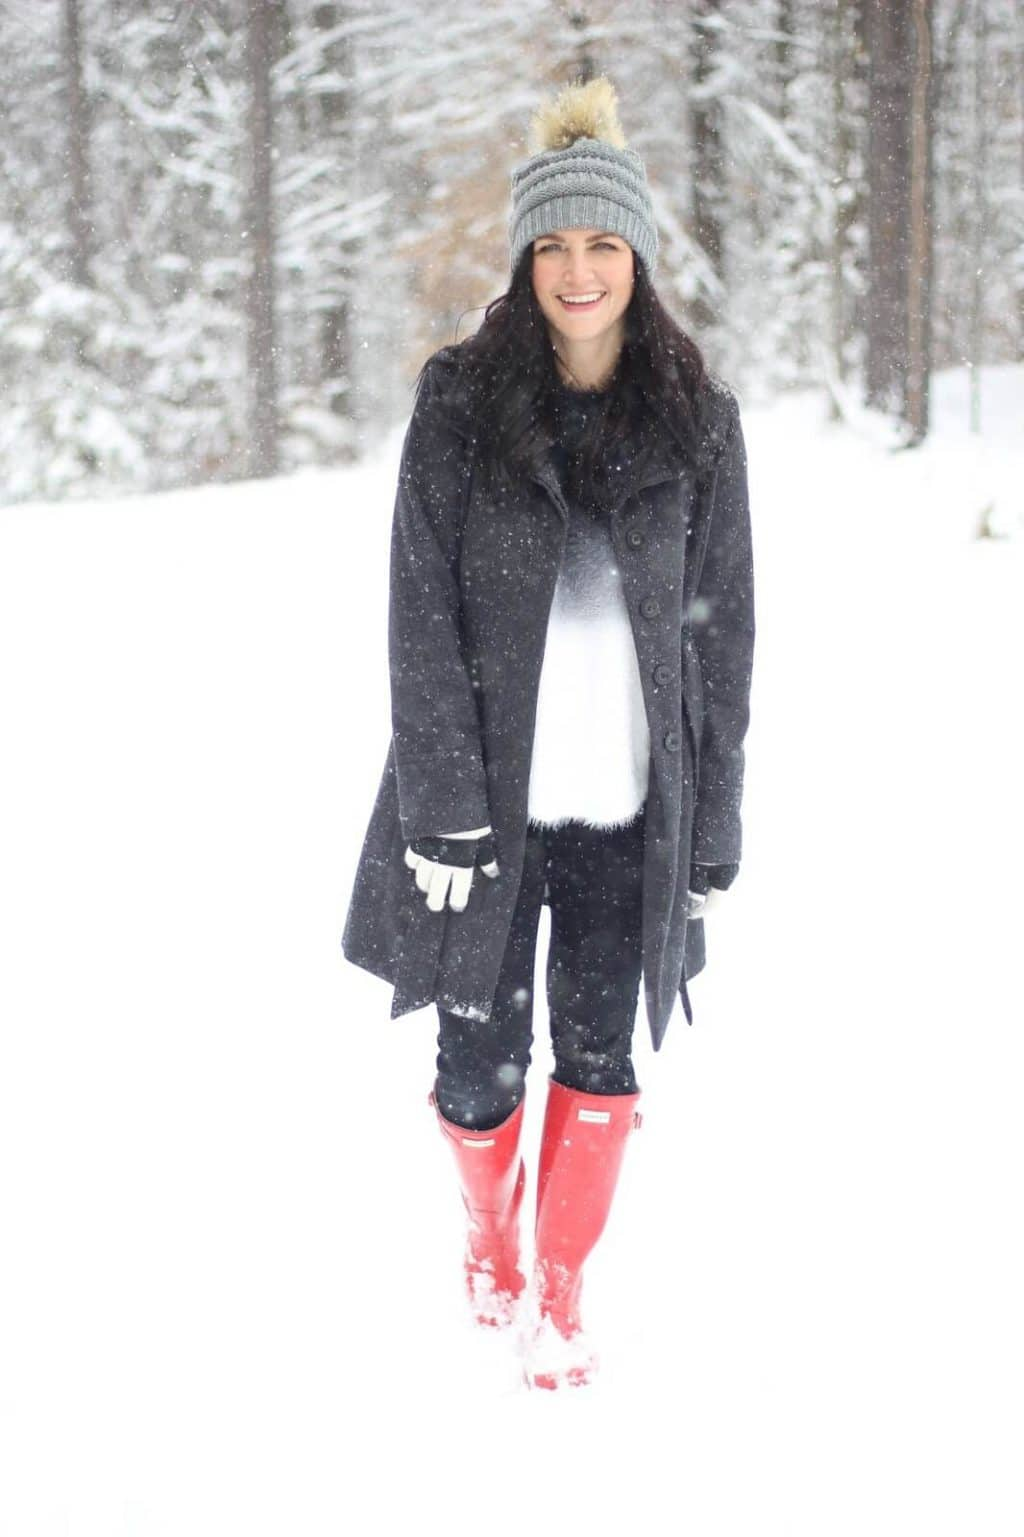 A look for snow with Red Hunter Boots, a Pom Beanie and cozy layers.